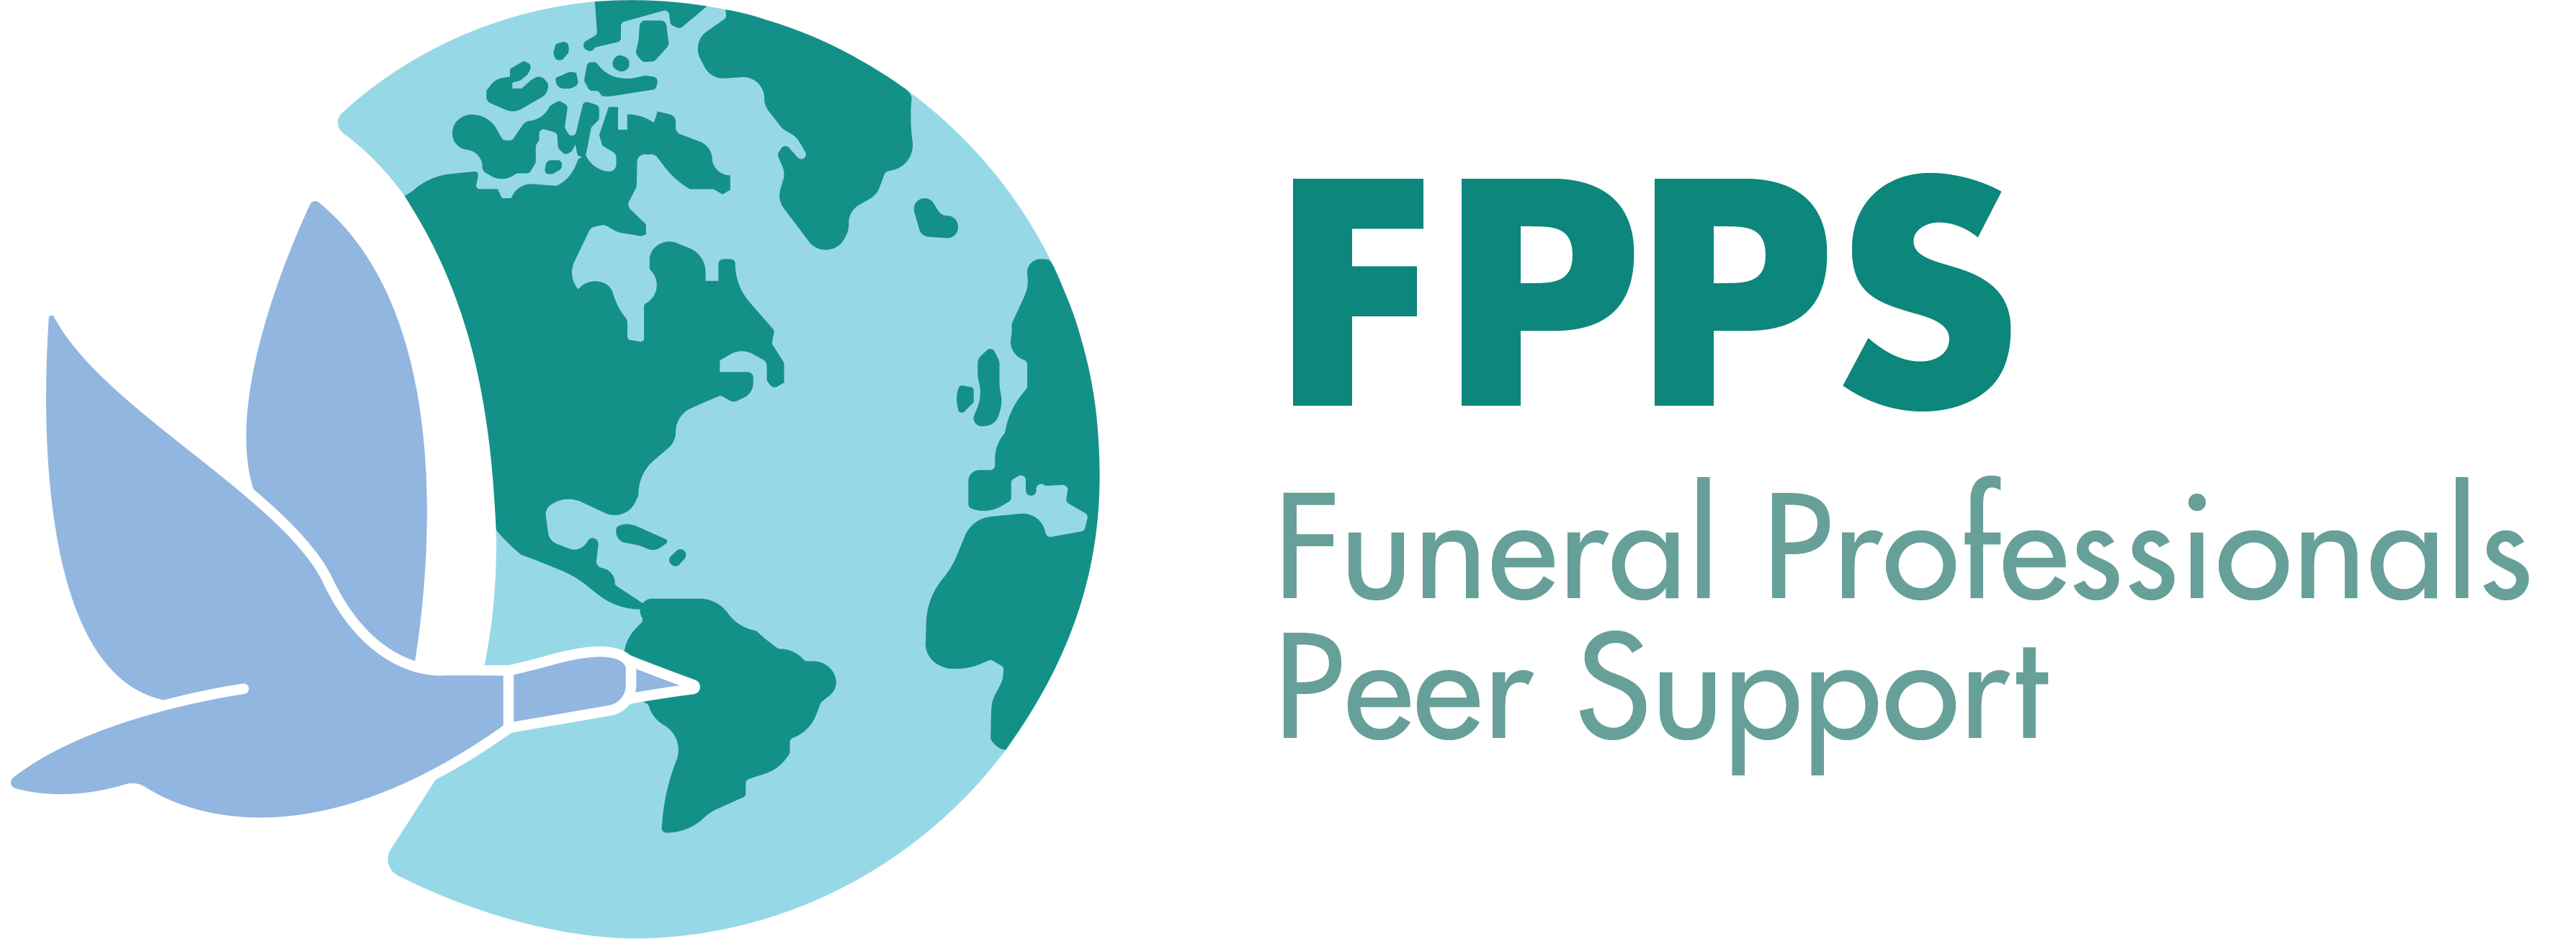 FPPS logo showing a Canadian Goose flying across the world